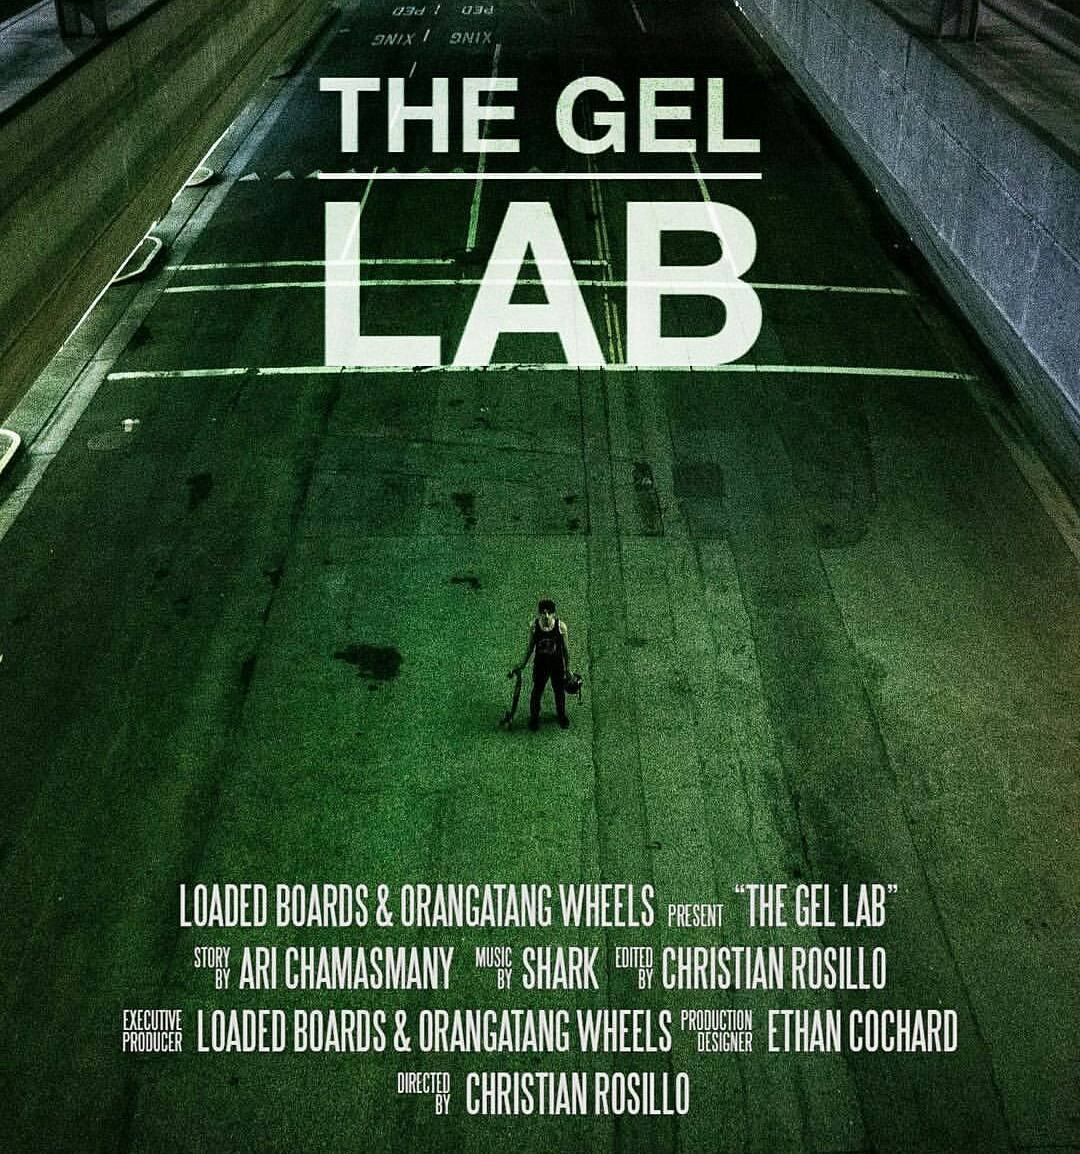 RELEASING TODAY: THE GEL LAB DOCUMENTARY BY @CHRISTIANROSILLO  The Mountain Adventure Film Festival was amazing! So many incredible films featuring some of the most unique locations for rock climbing and mountain expeditions with some of the best...